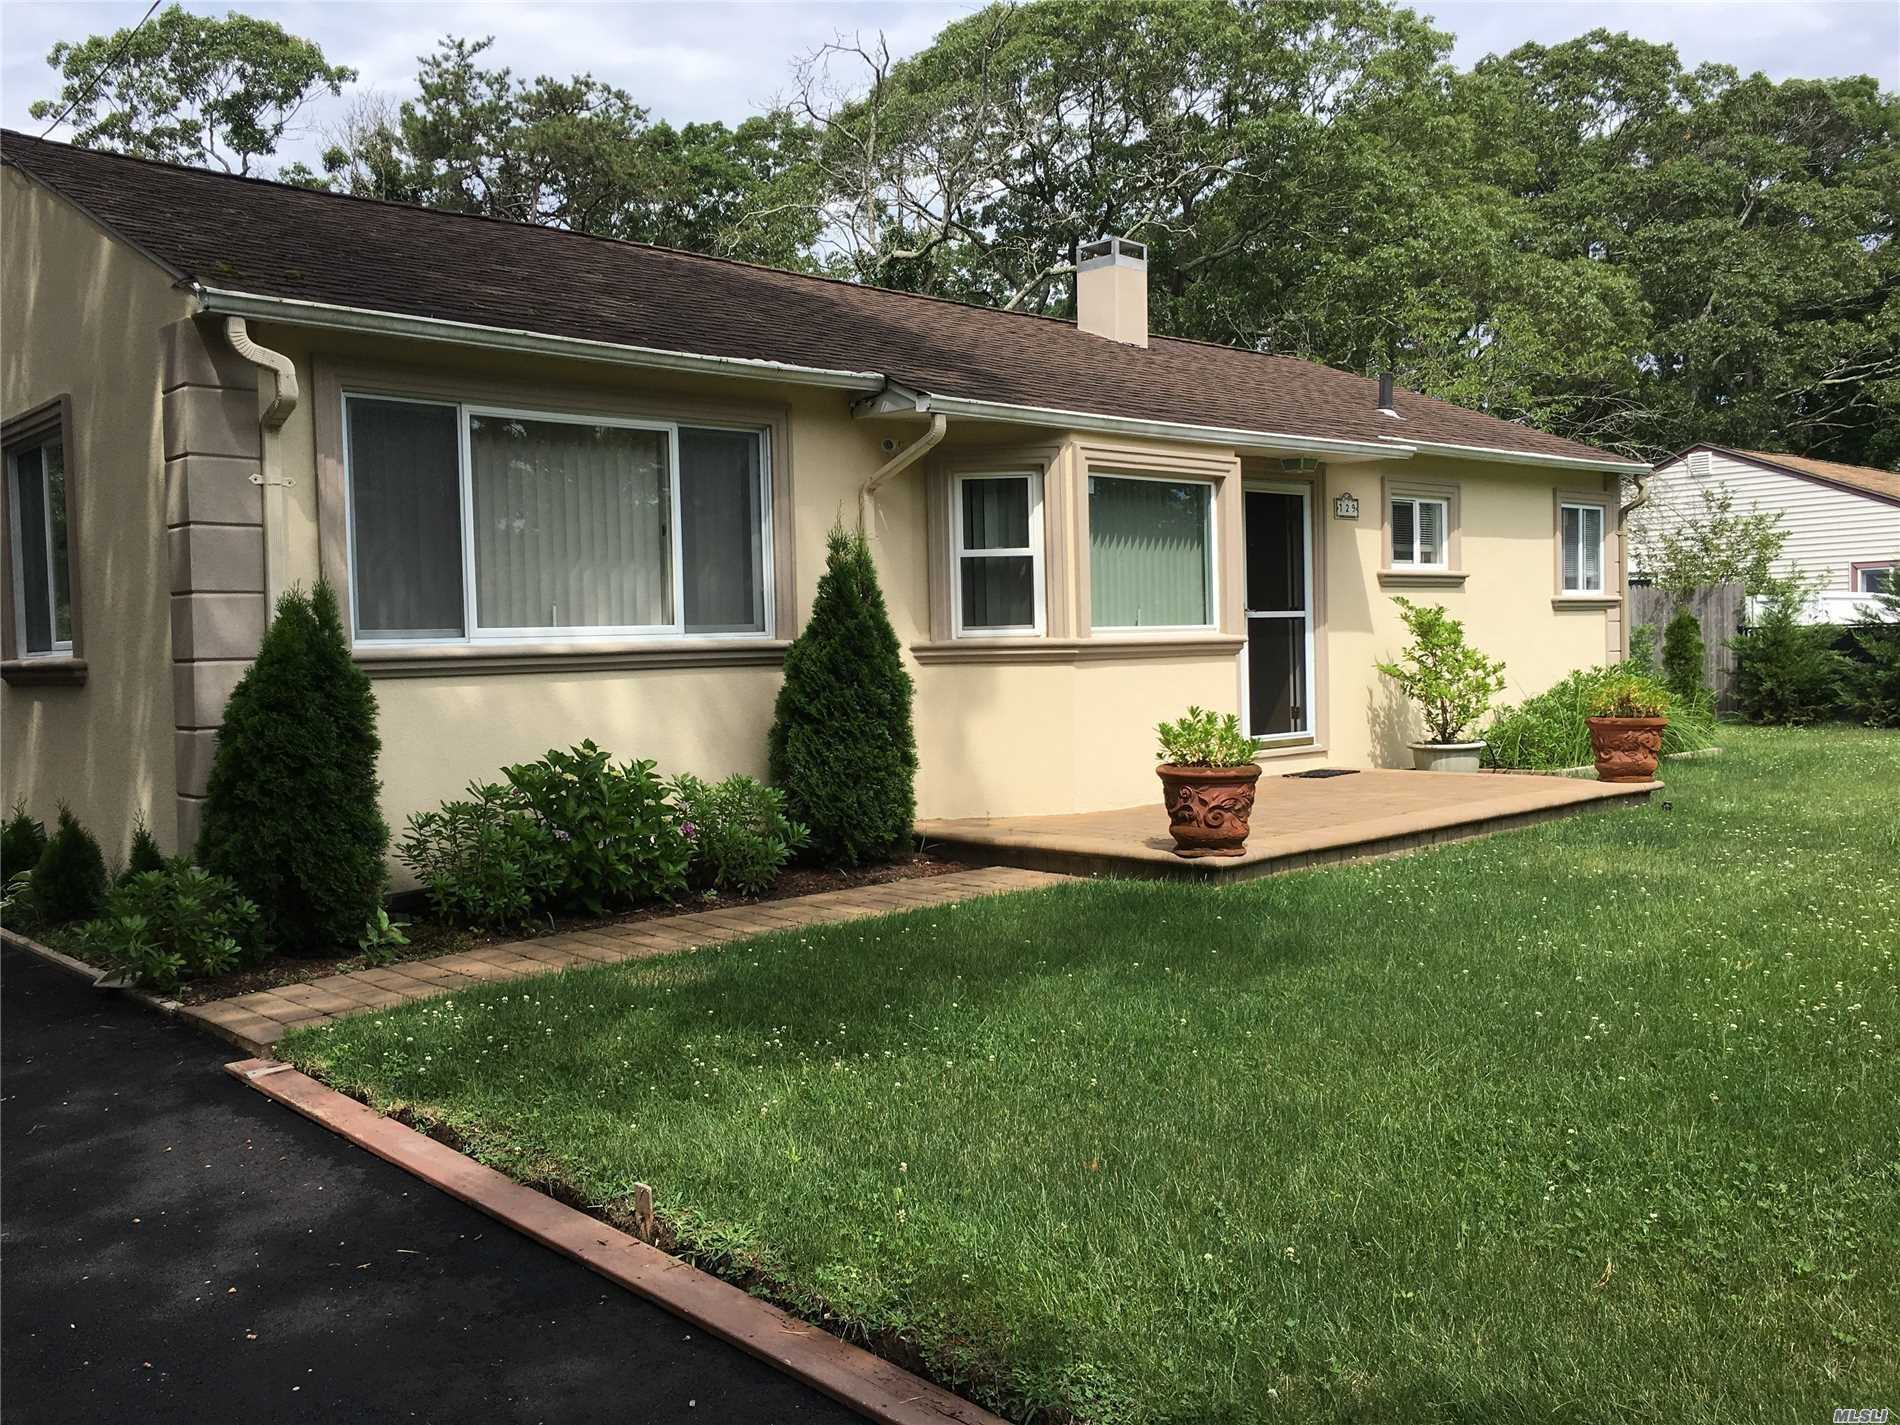 Beautiful Redone Ranch With A Lovely Yard. Mature And Lush Landscaping Surround The Paver Stone Patio With Awning. Large Detatched Garage. Feet From Lovely Peconic Bay Views In Waterfront Community.